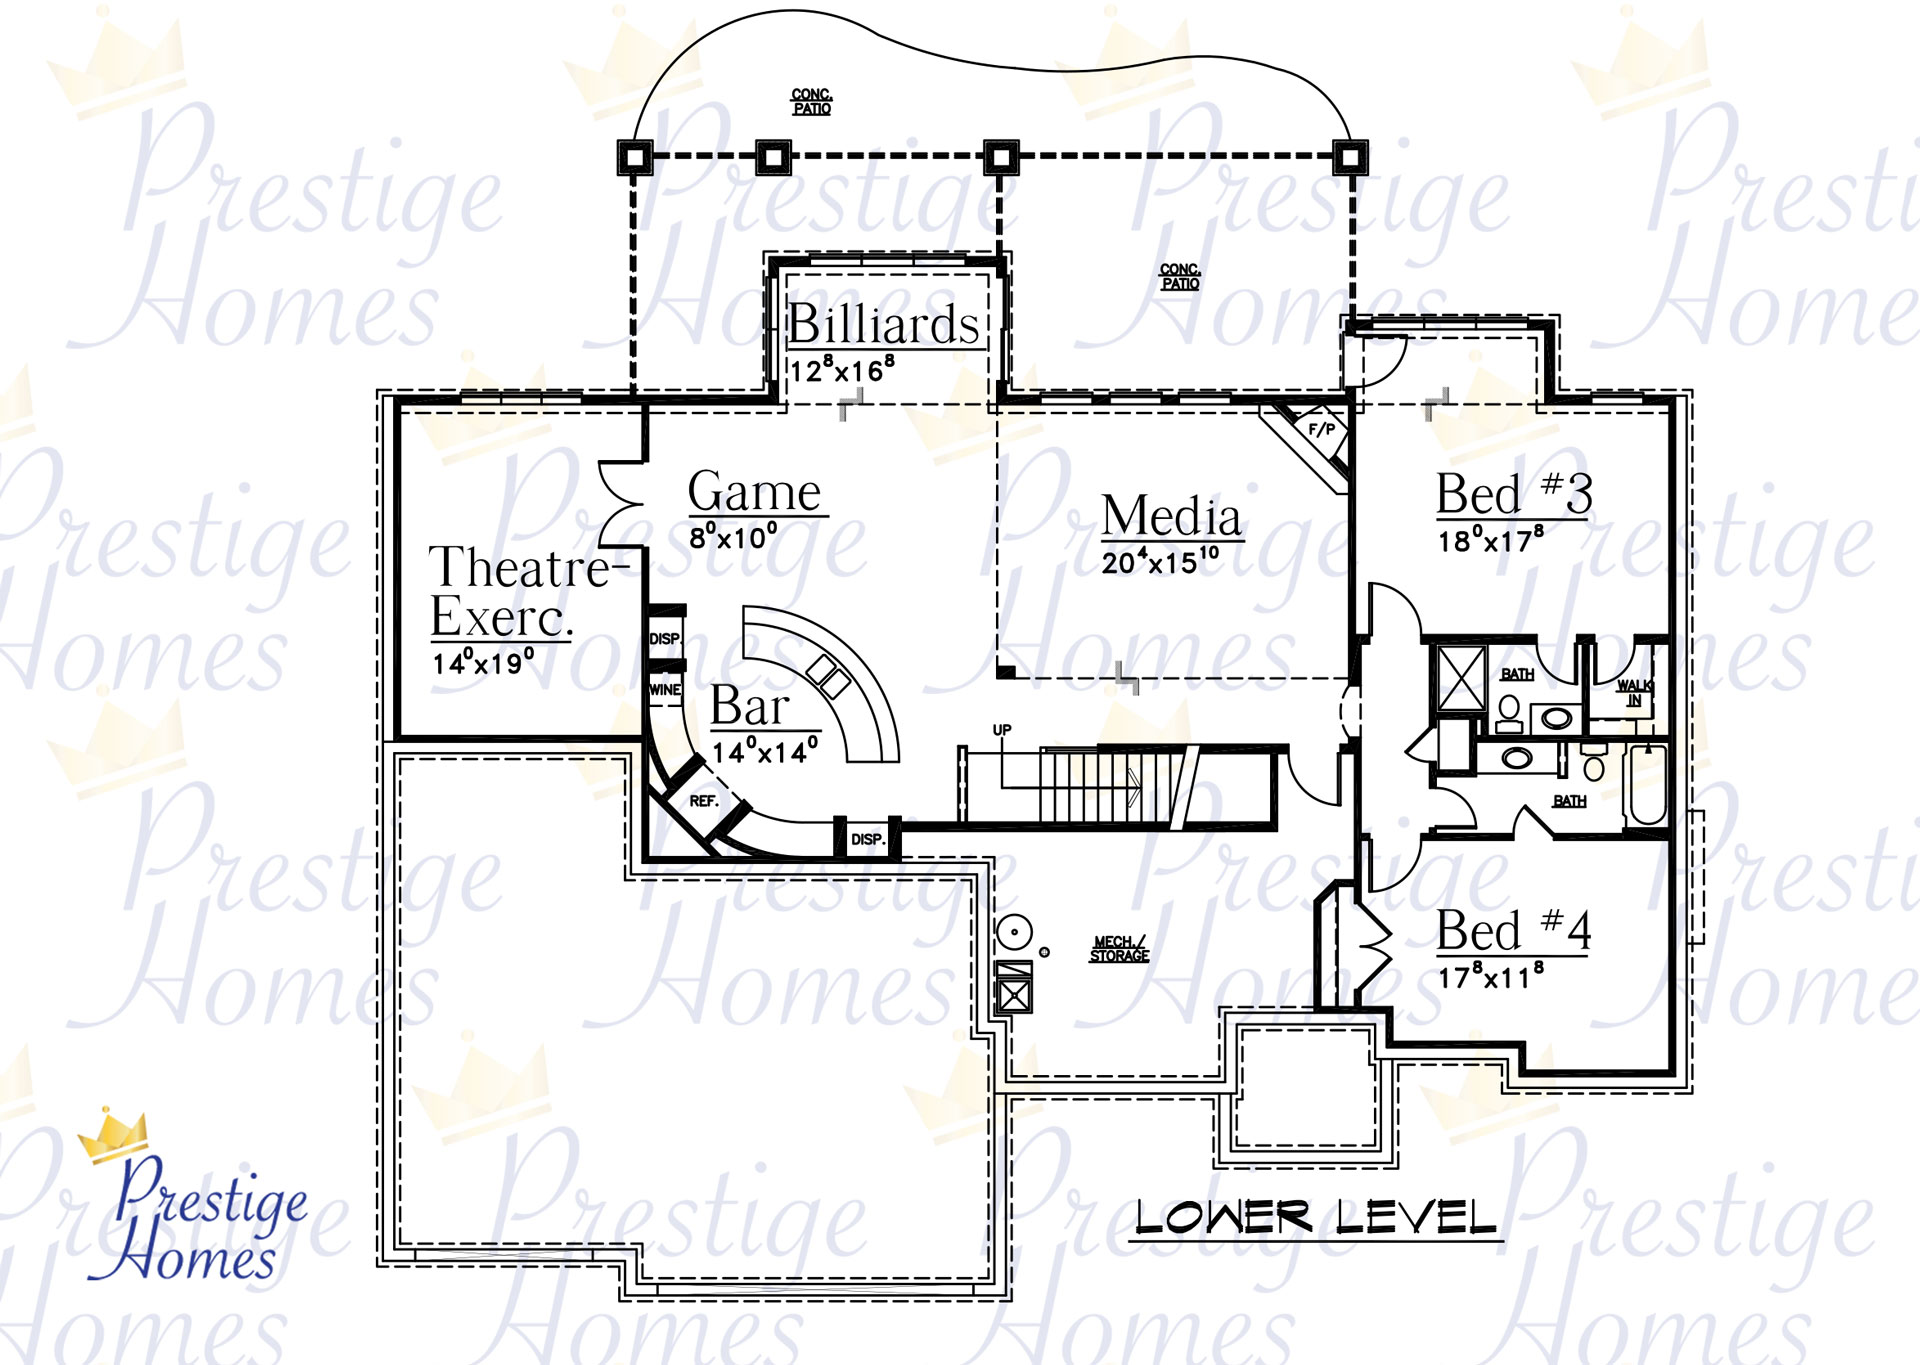 Prestige Homes - Floor Plan - Bella 4 Bedroom Lower